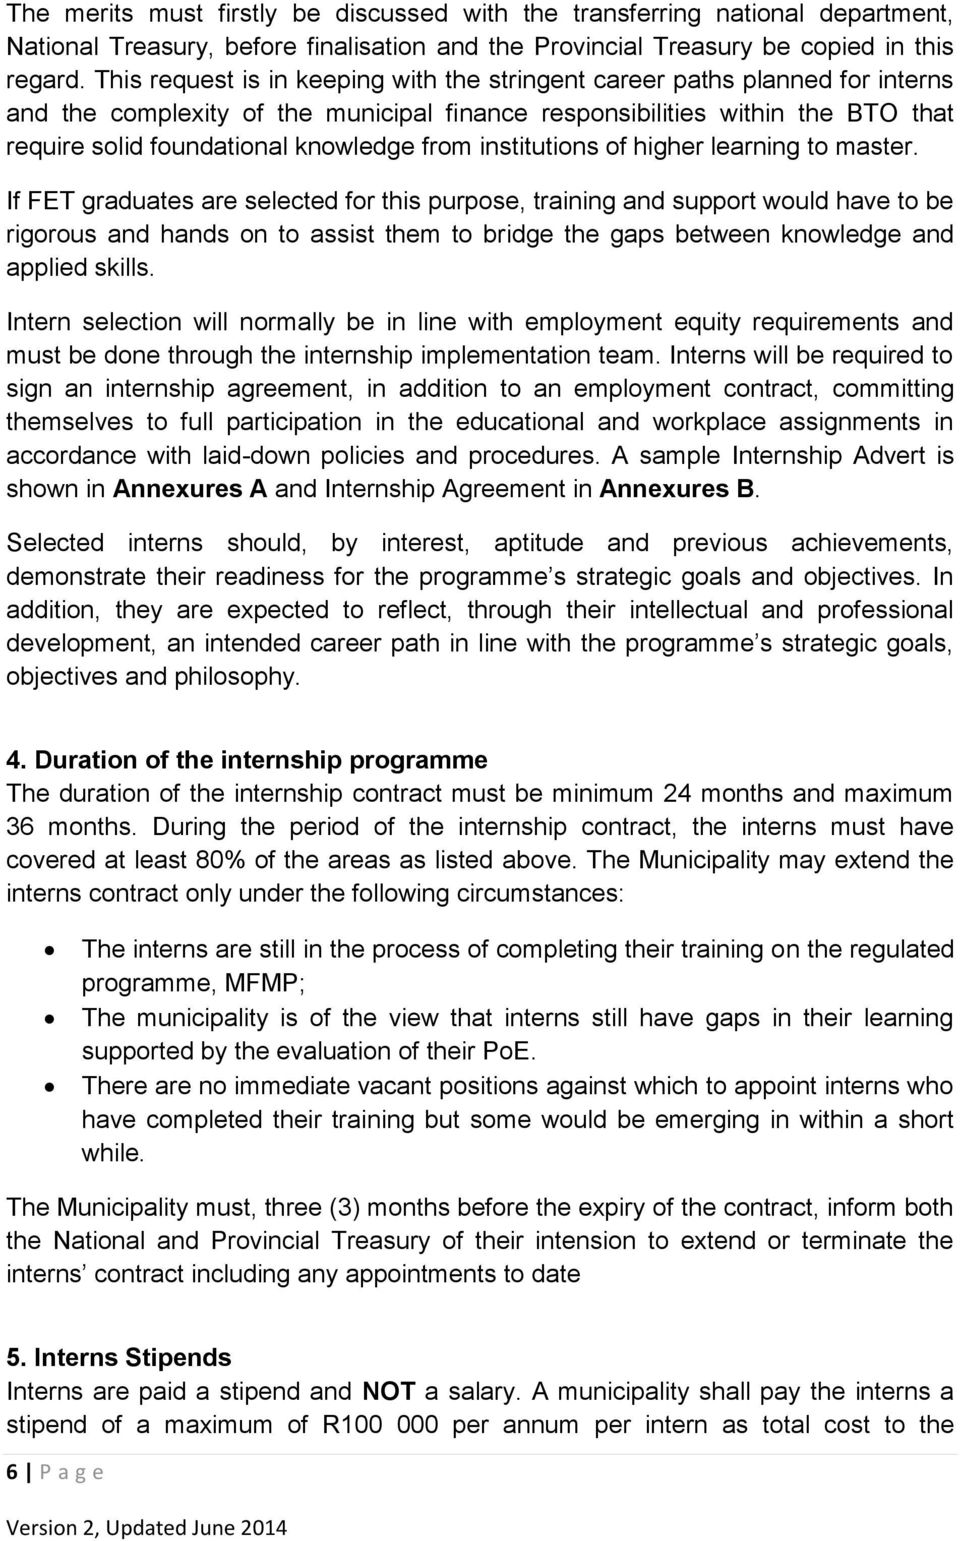 GUIDELINES FOR IMPLEMENTATION OF MUNICIPAL FINANCE